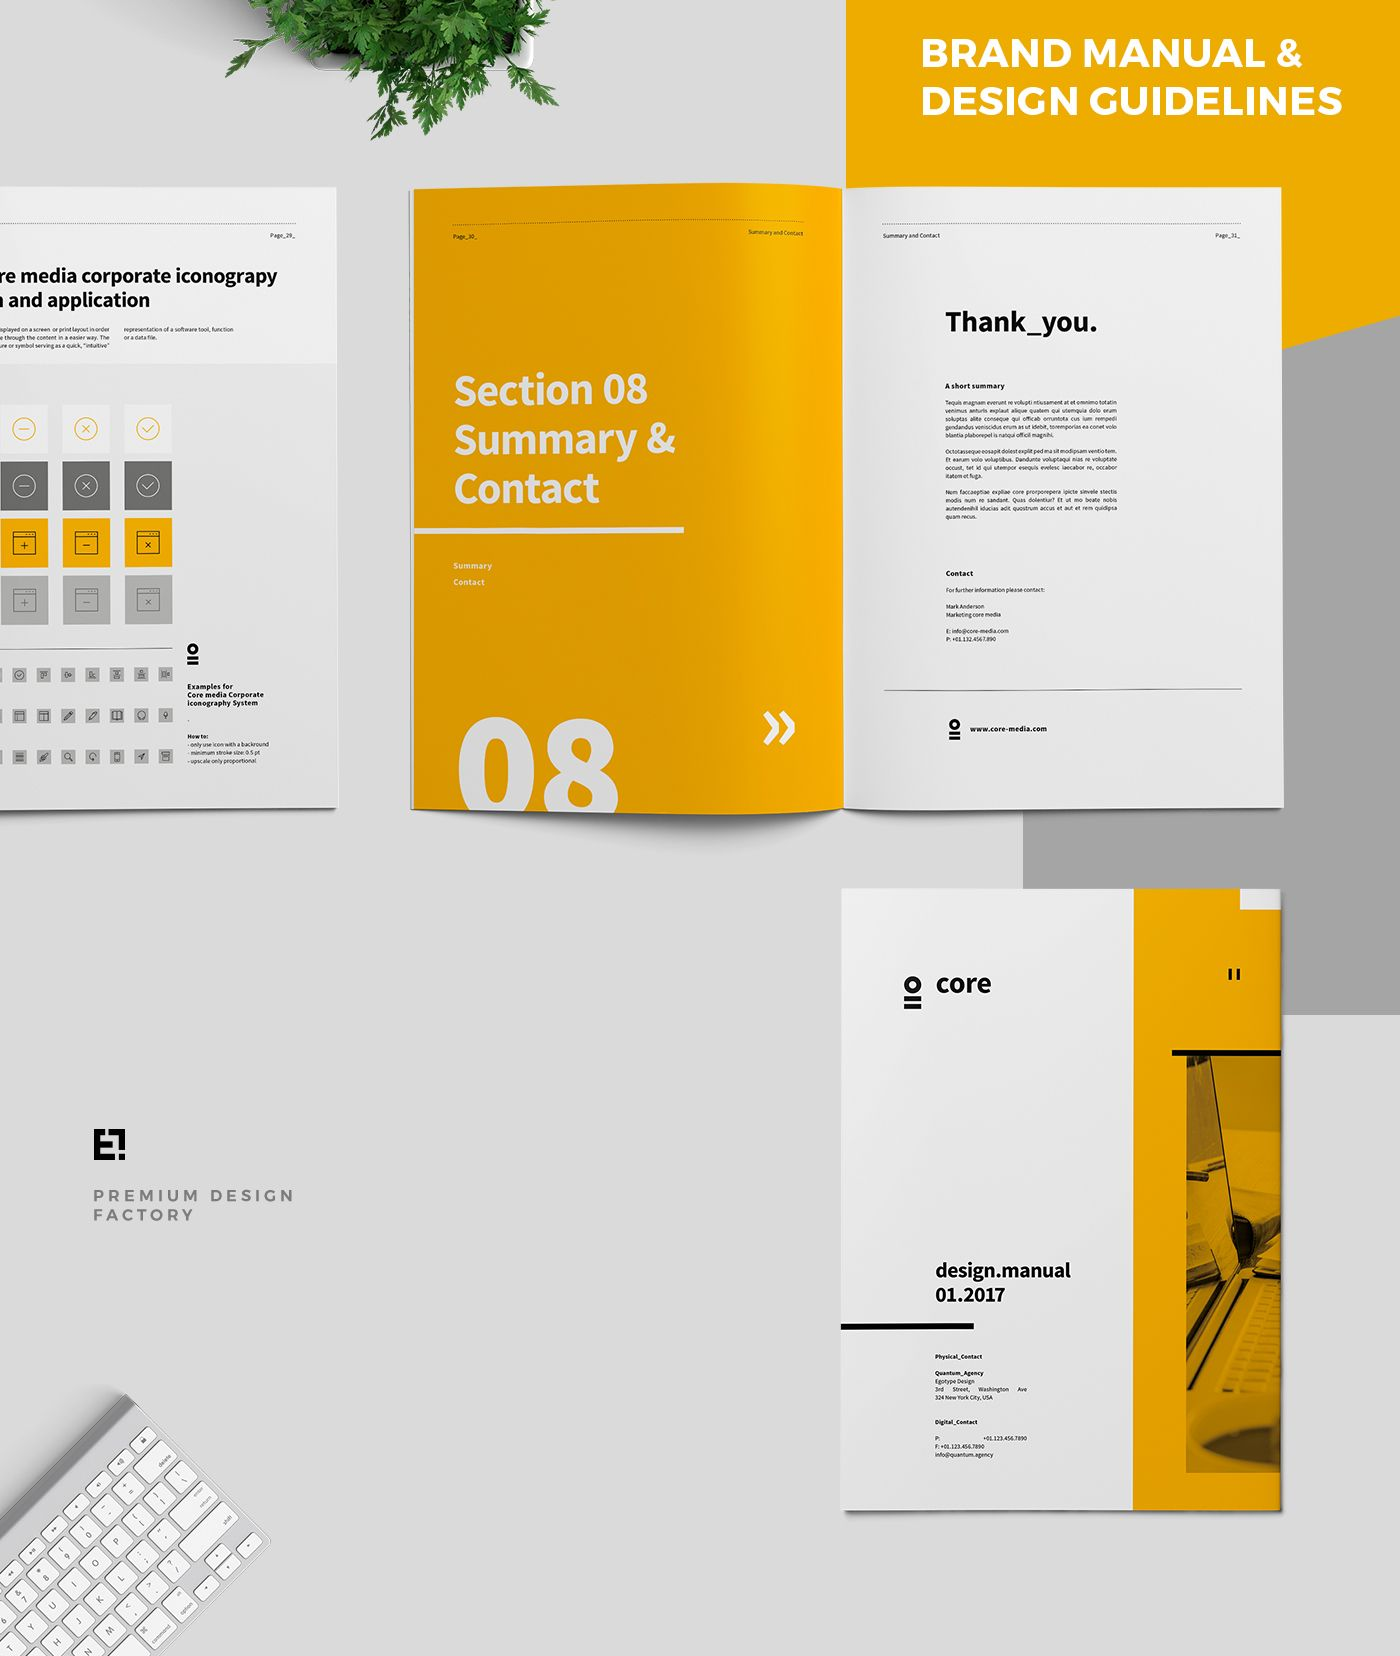 Core Brand Manual & Guidelines on Behance